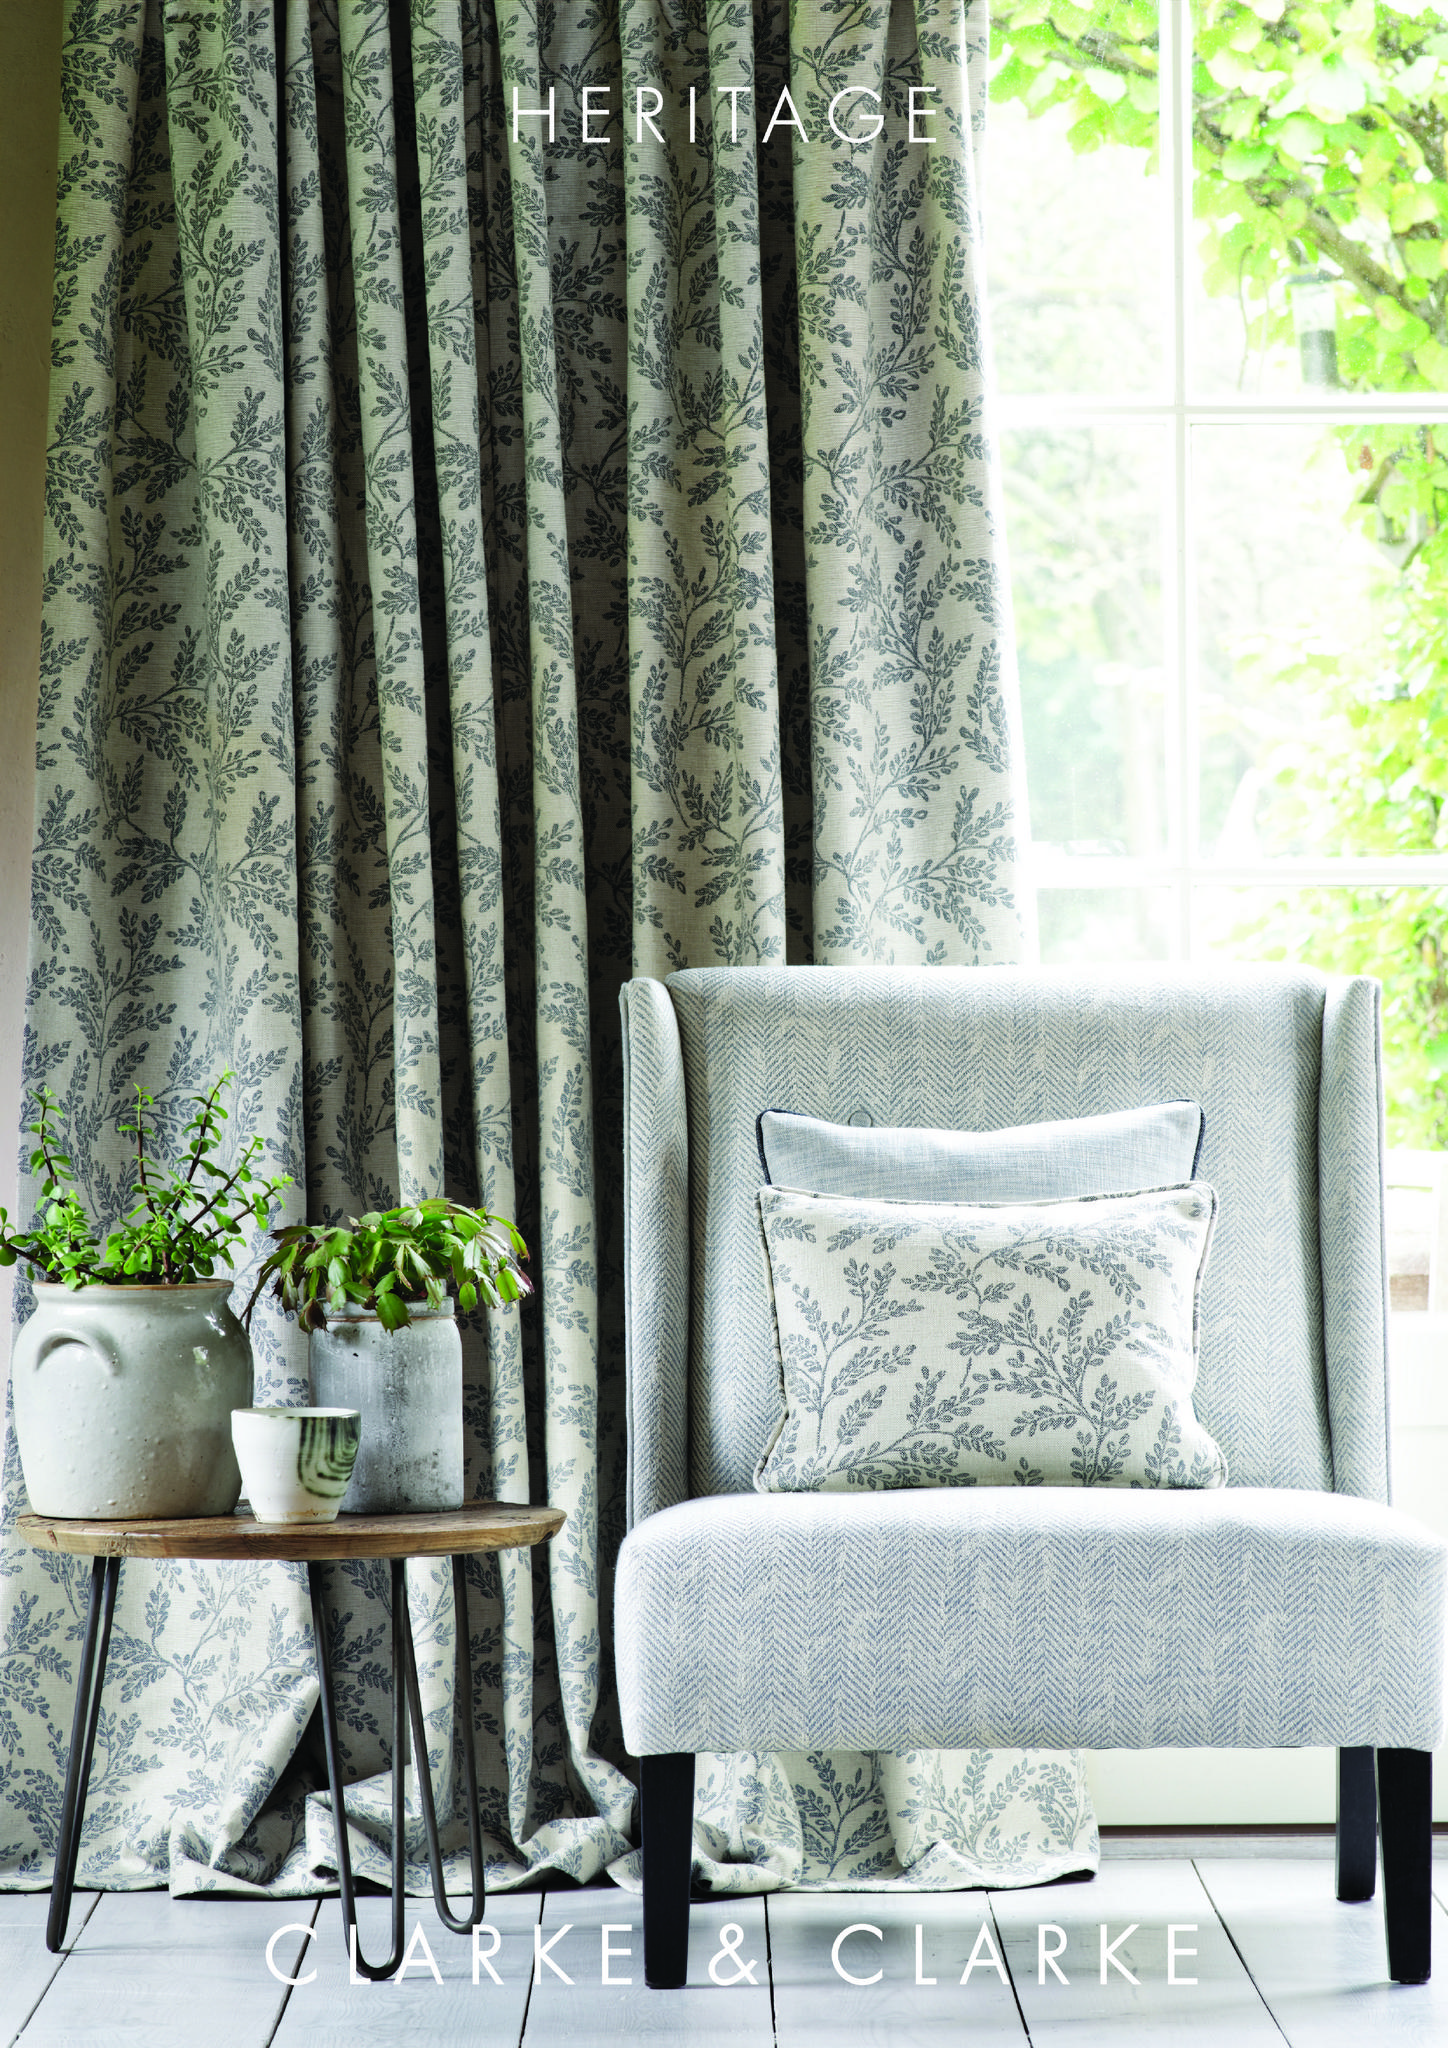 Clarke clarke spring fair 2020 the uk 39 s no 1 gift - Window treatment trends 2019 ...